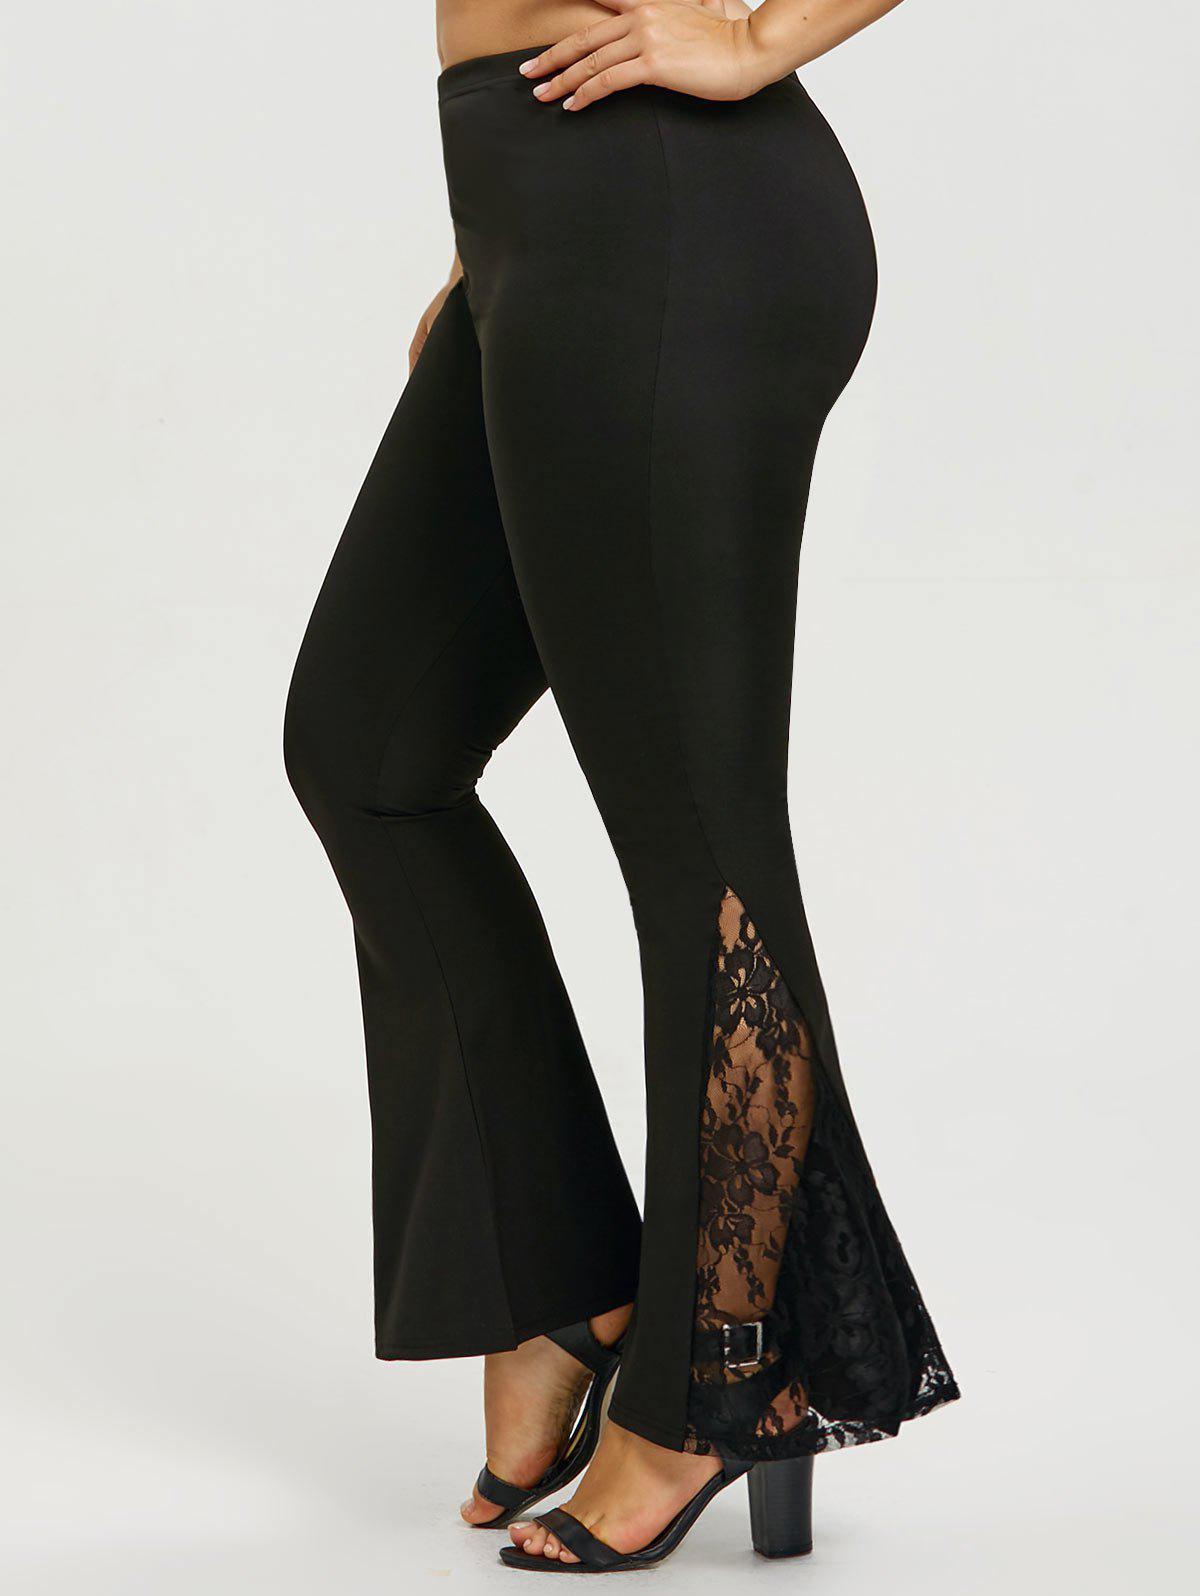 Plus Size Lace Panel  Flare Pants sheer lace panel plus size leggings